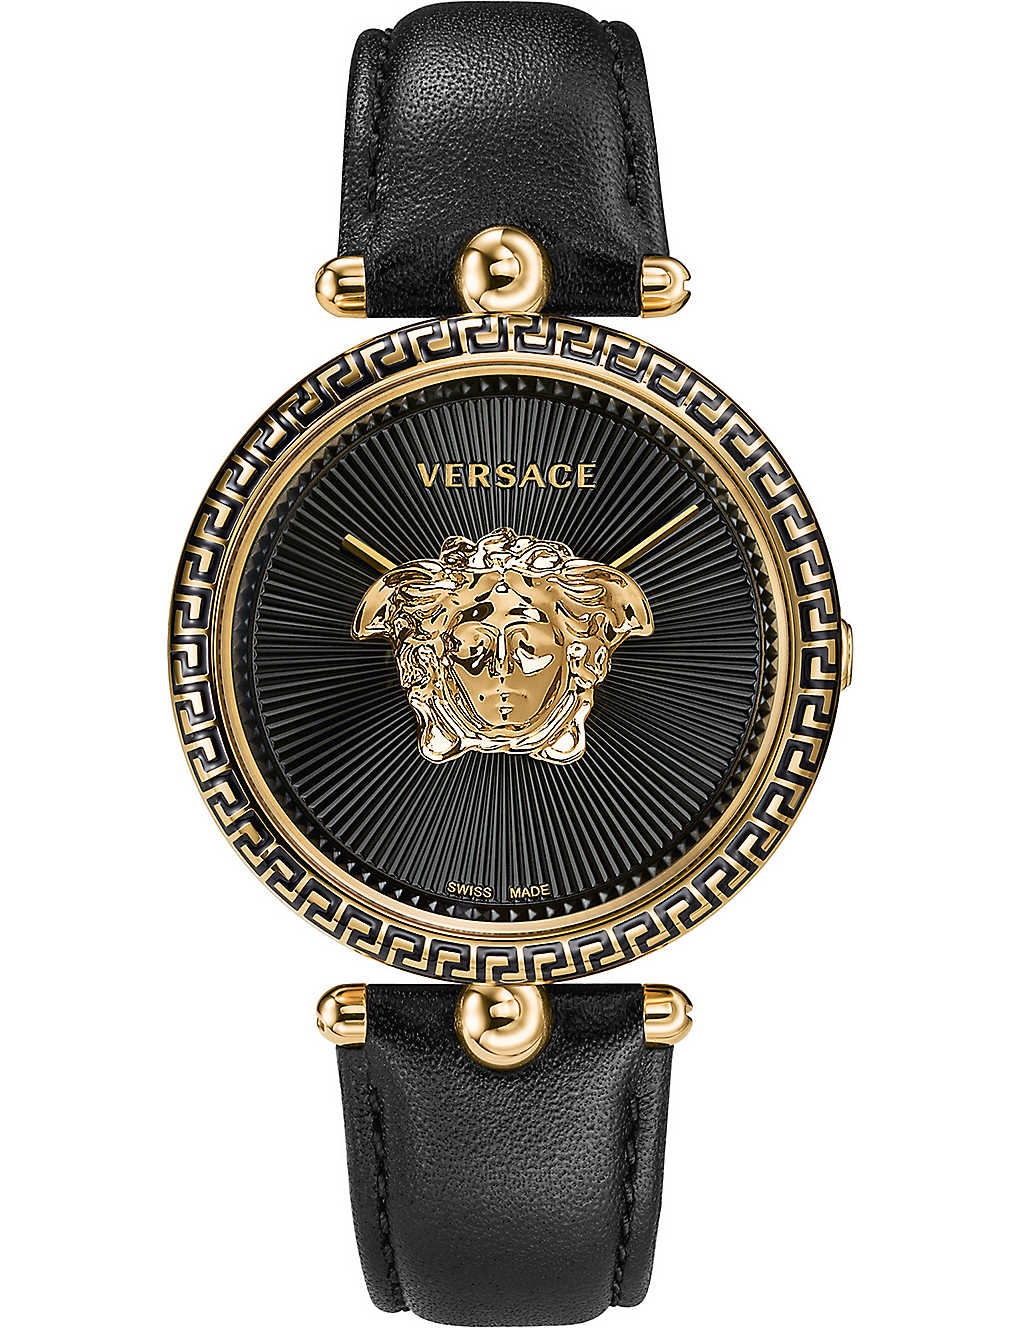 648044f6a6b0 VERSACE - Palazzo Empire yellow-gold and leather watch